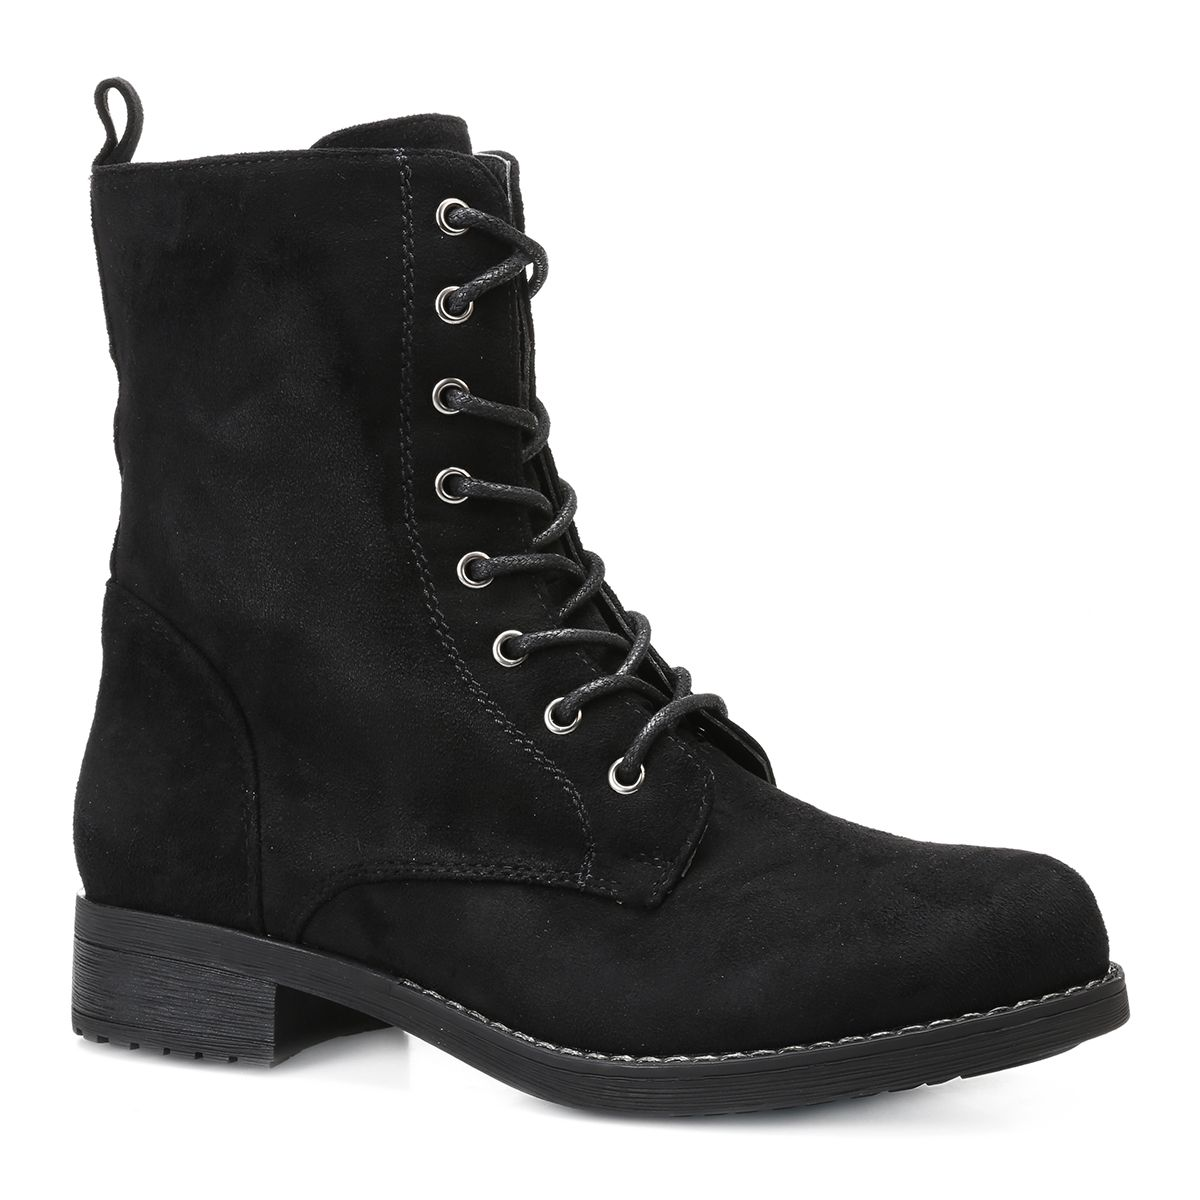 Bottines à lacets en simili daim noir